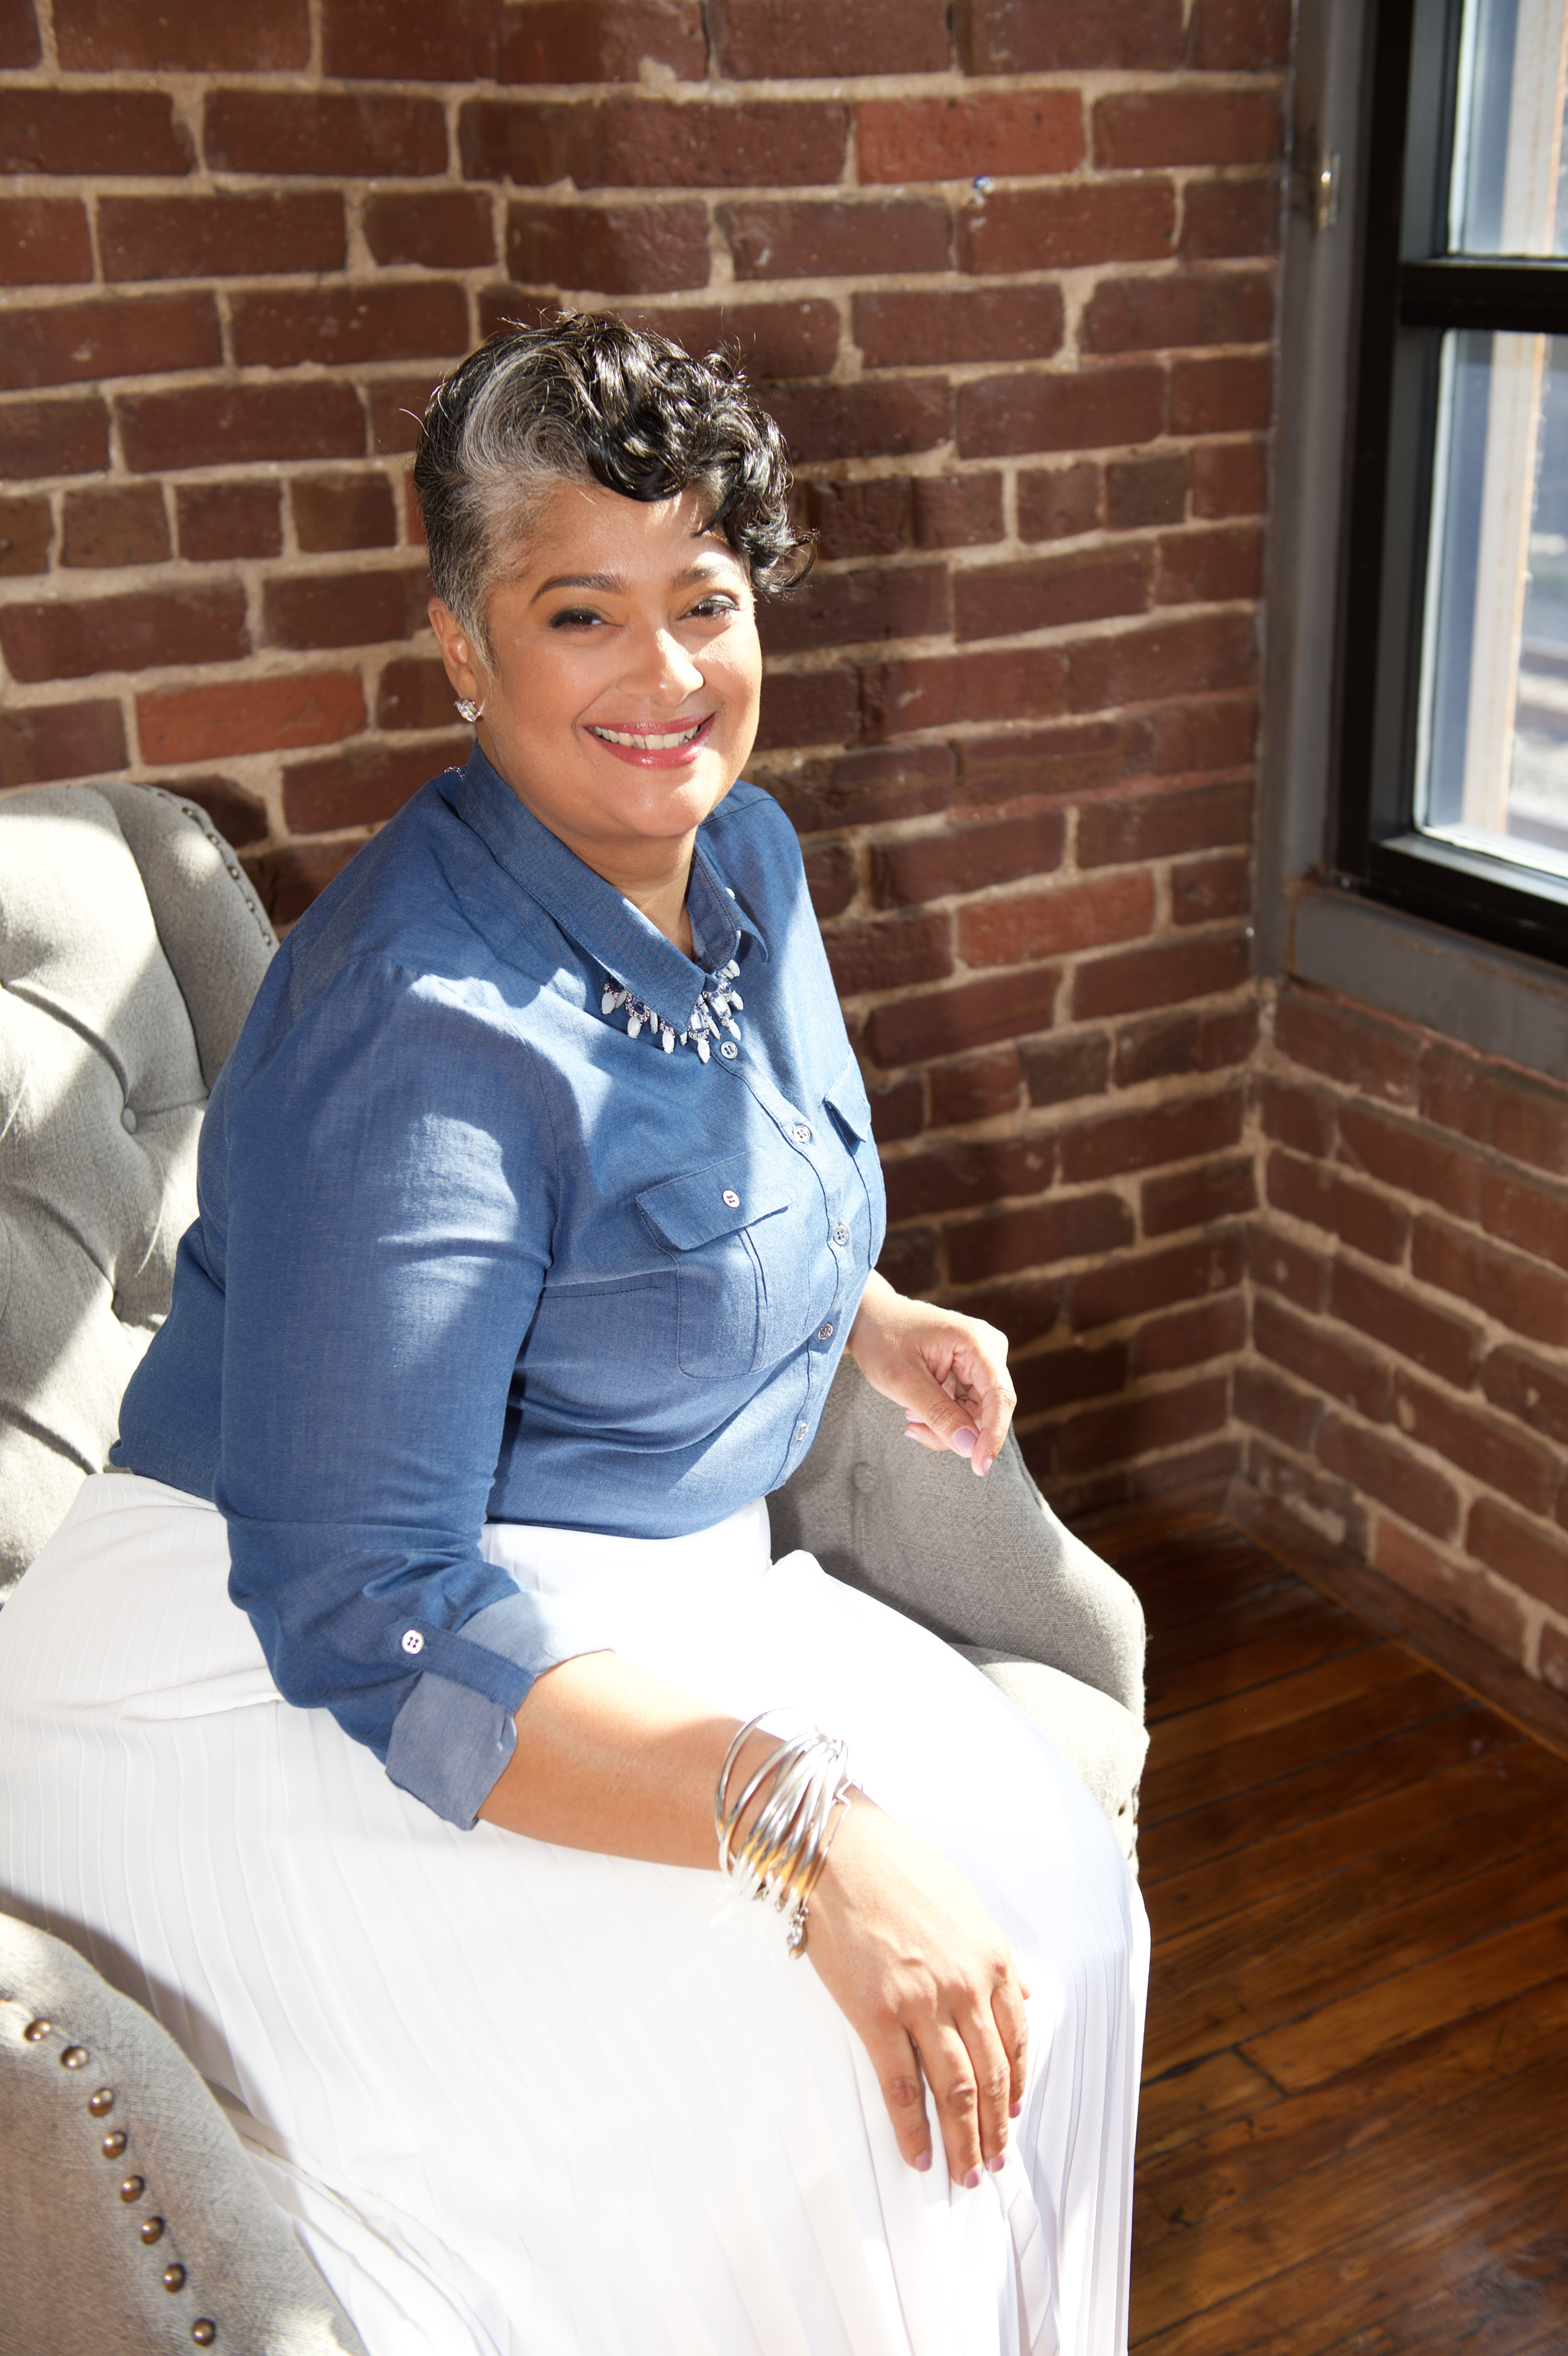 Irene Tyndale, Chief Event Officer, Irene Tyndale Events & Design  @ityndaleevents